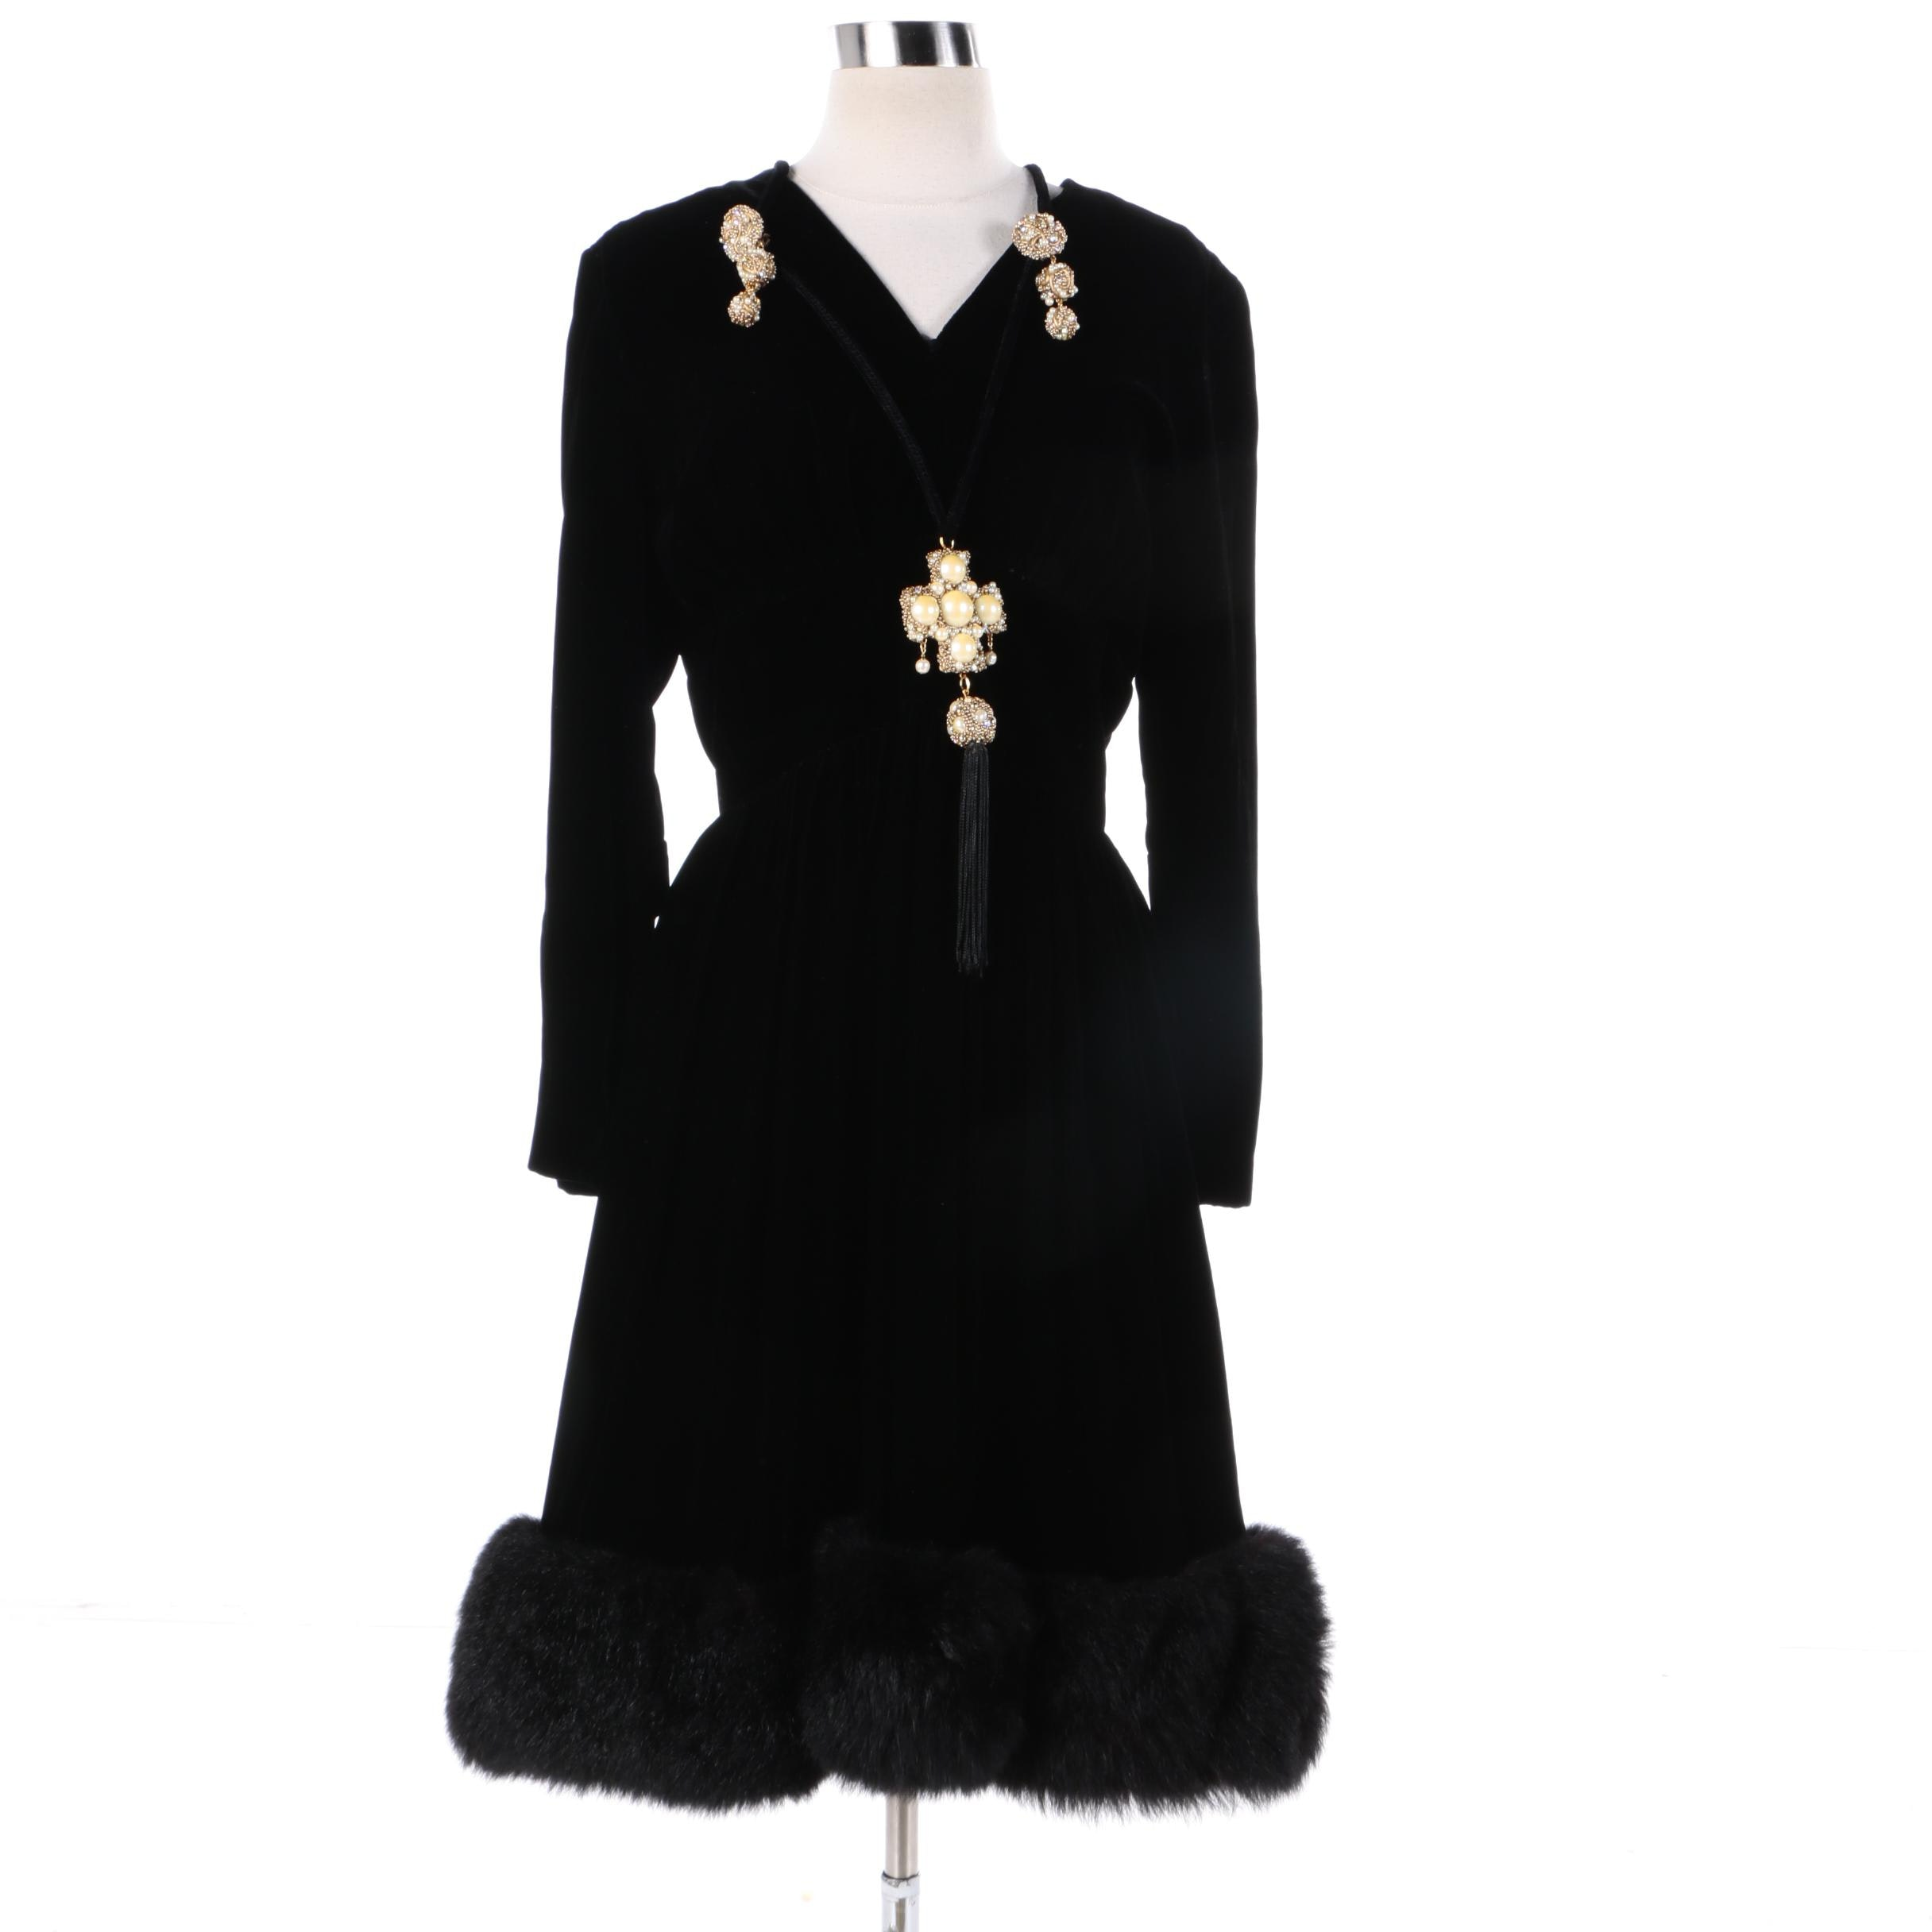 Vintage Lillie Rubin Black Velvet Dress with Dyed Australian Possum Fur Trim